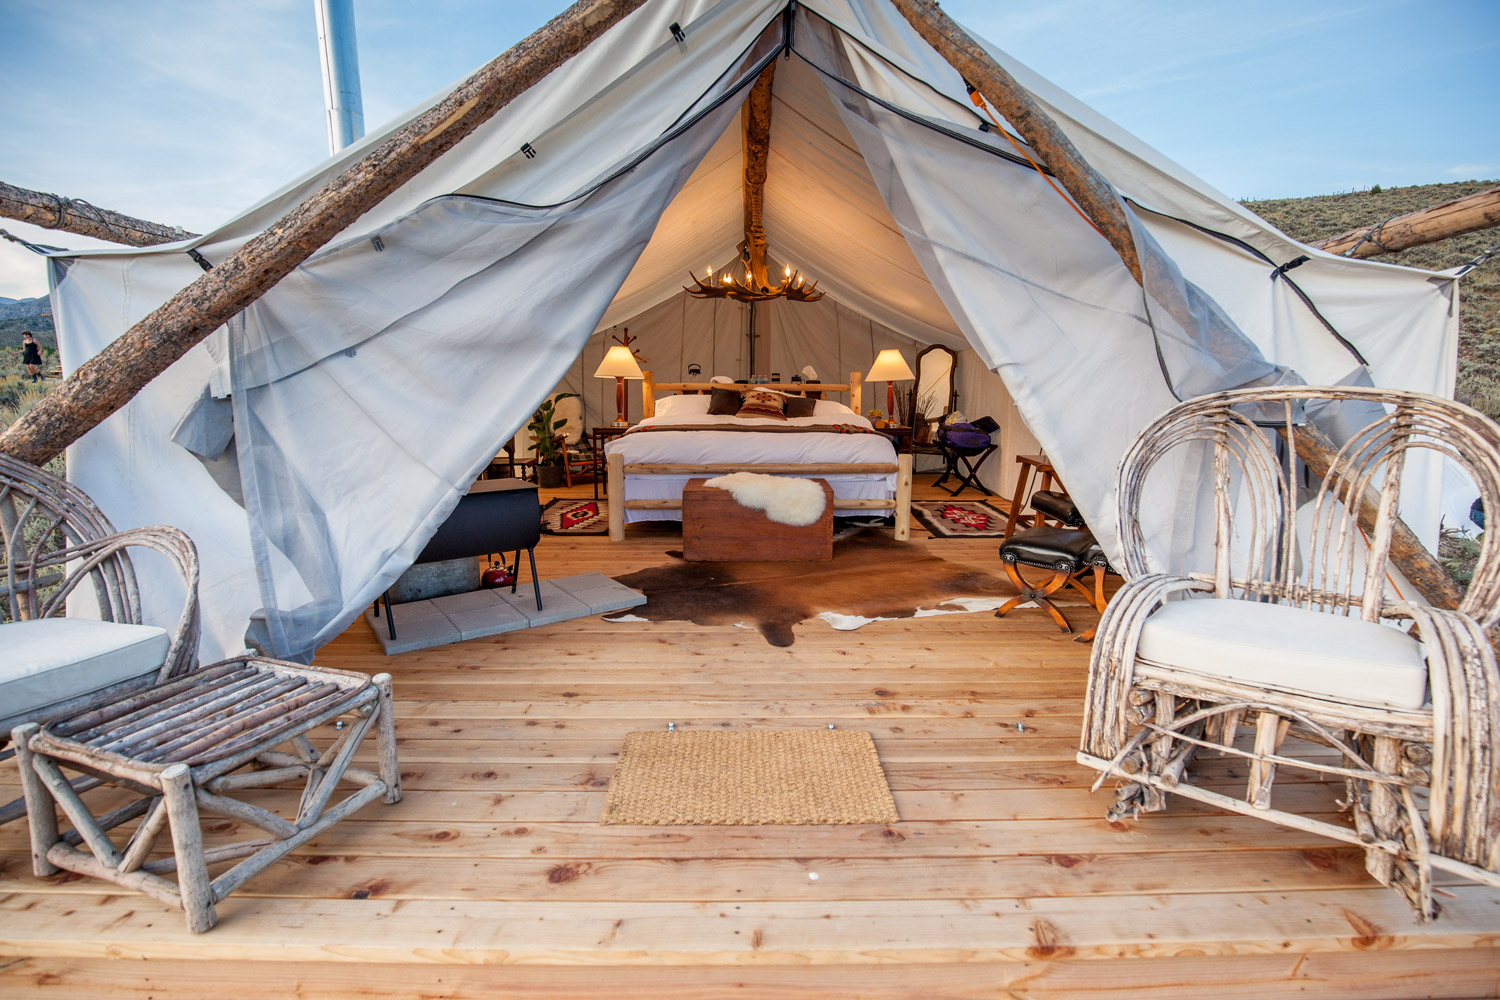 All of Collective Retreats accommodations are in luxury canvas tents each of which are equipped with high-end amenities. & New Experiential Travel Company Debuts Summer Retreats - Recommend